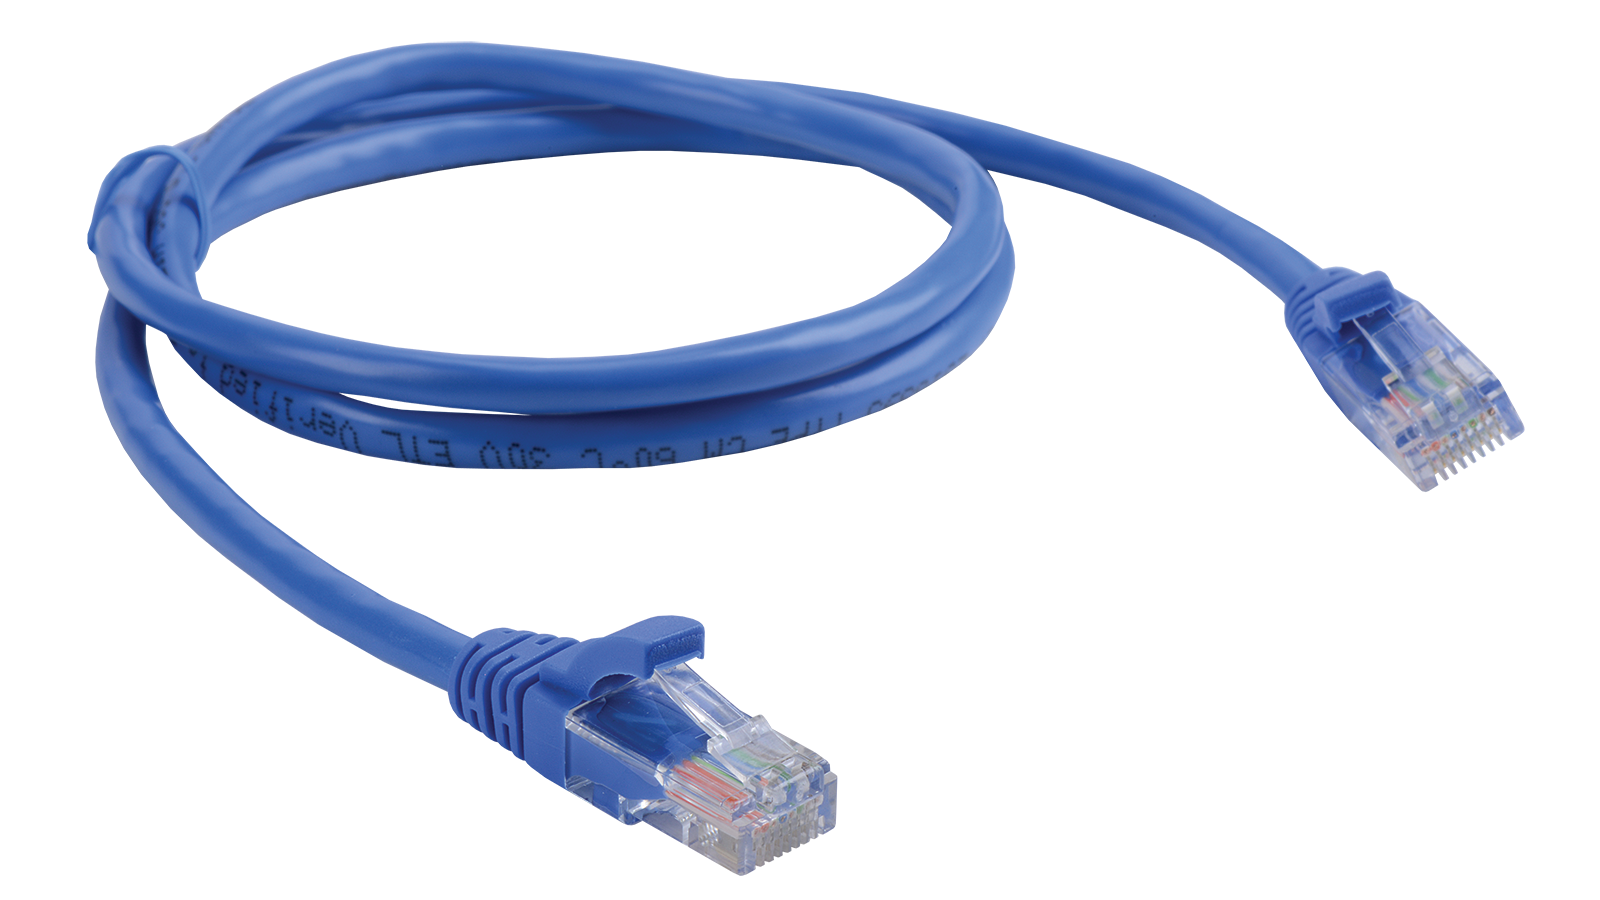 Lan Solutions Category 5E U/utp Pre Made Patch Cable - Network Cable, Transparent background PNG HD thumbnail